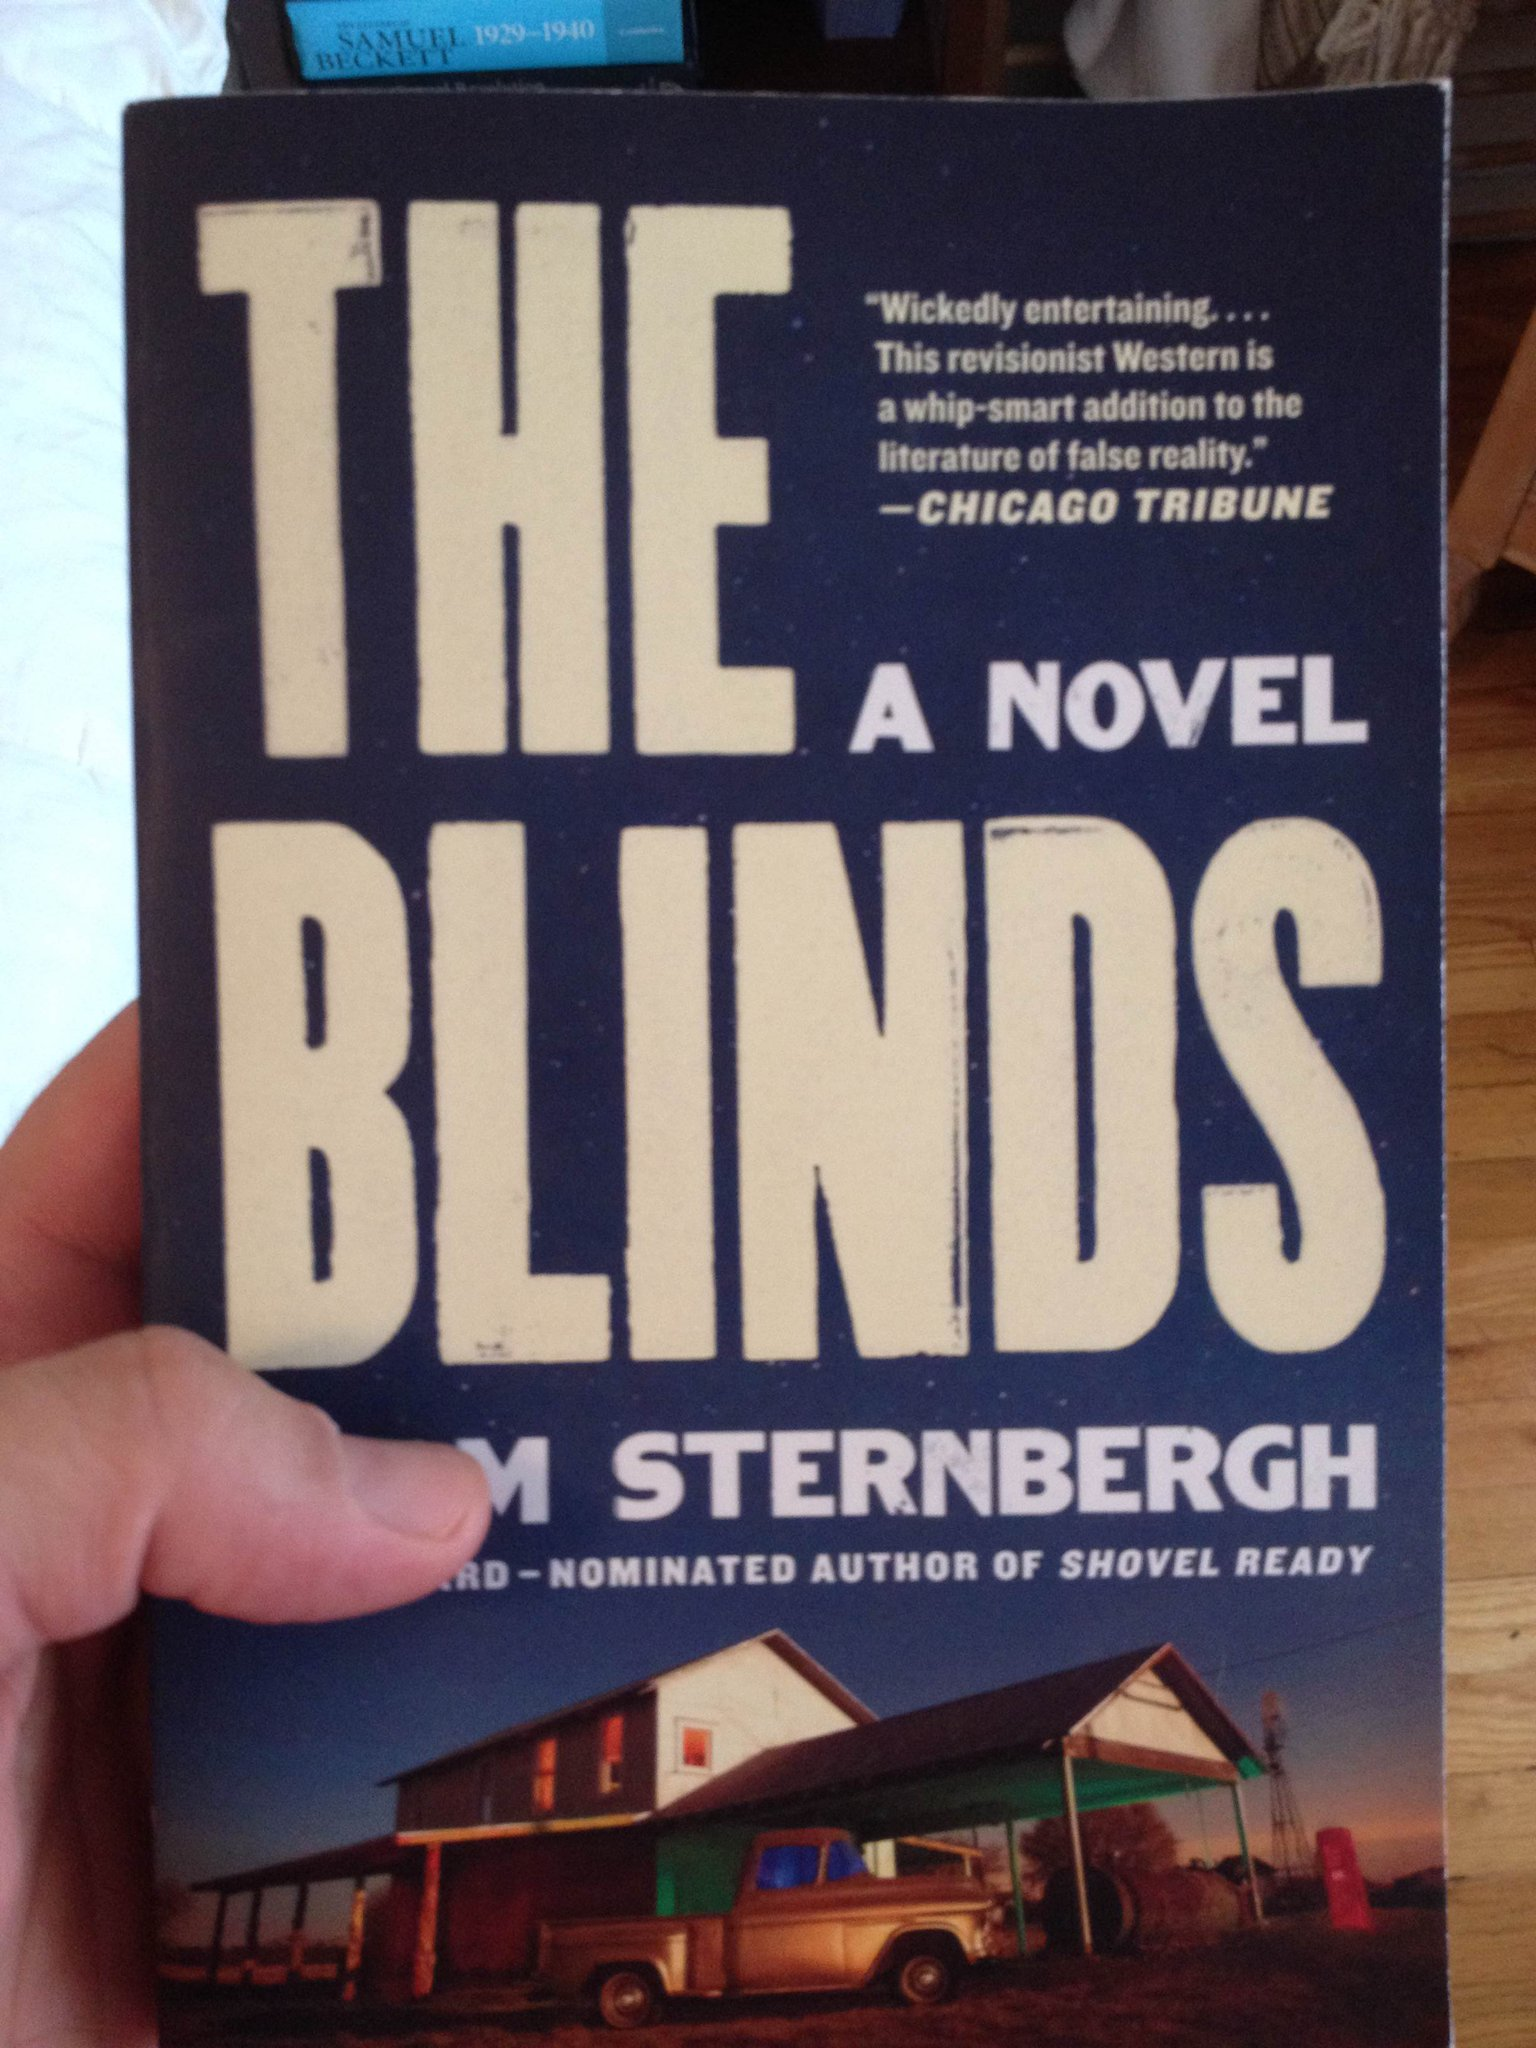 The only known photograph of THE BLINDS paperback currently in existence.